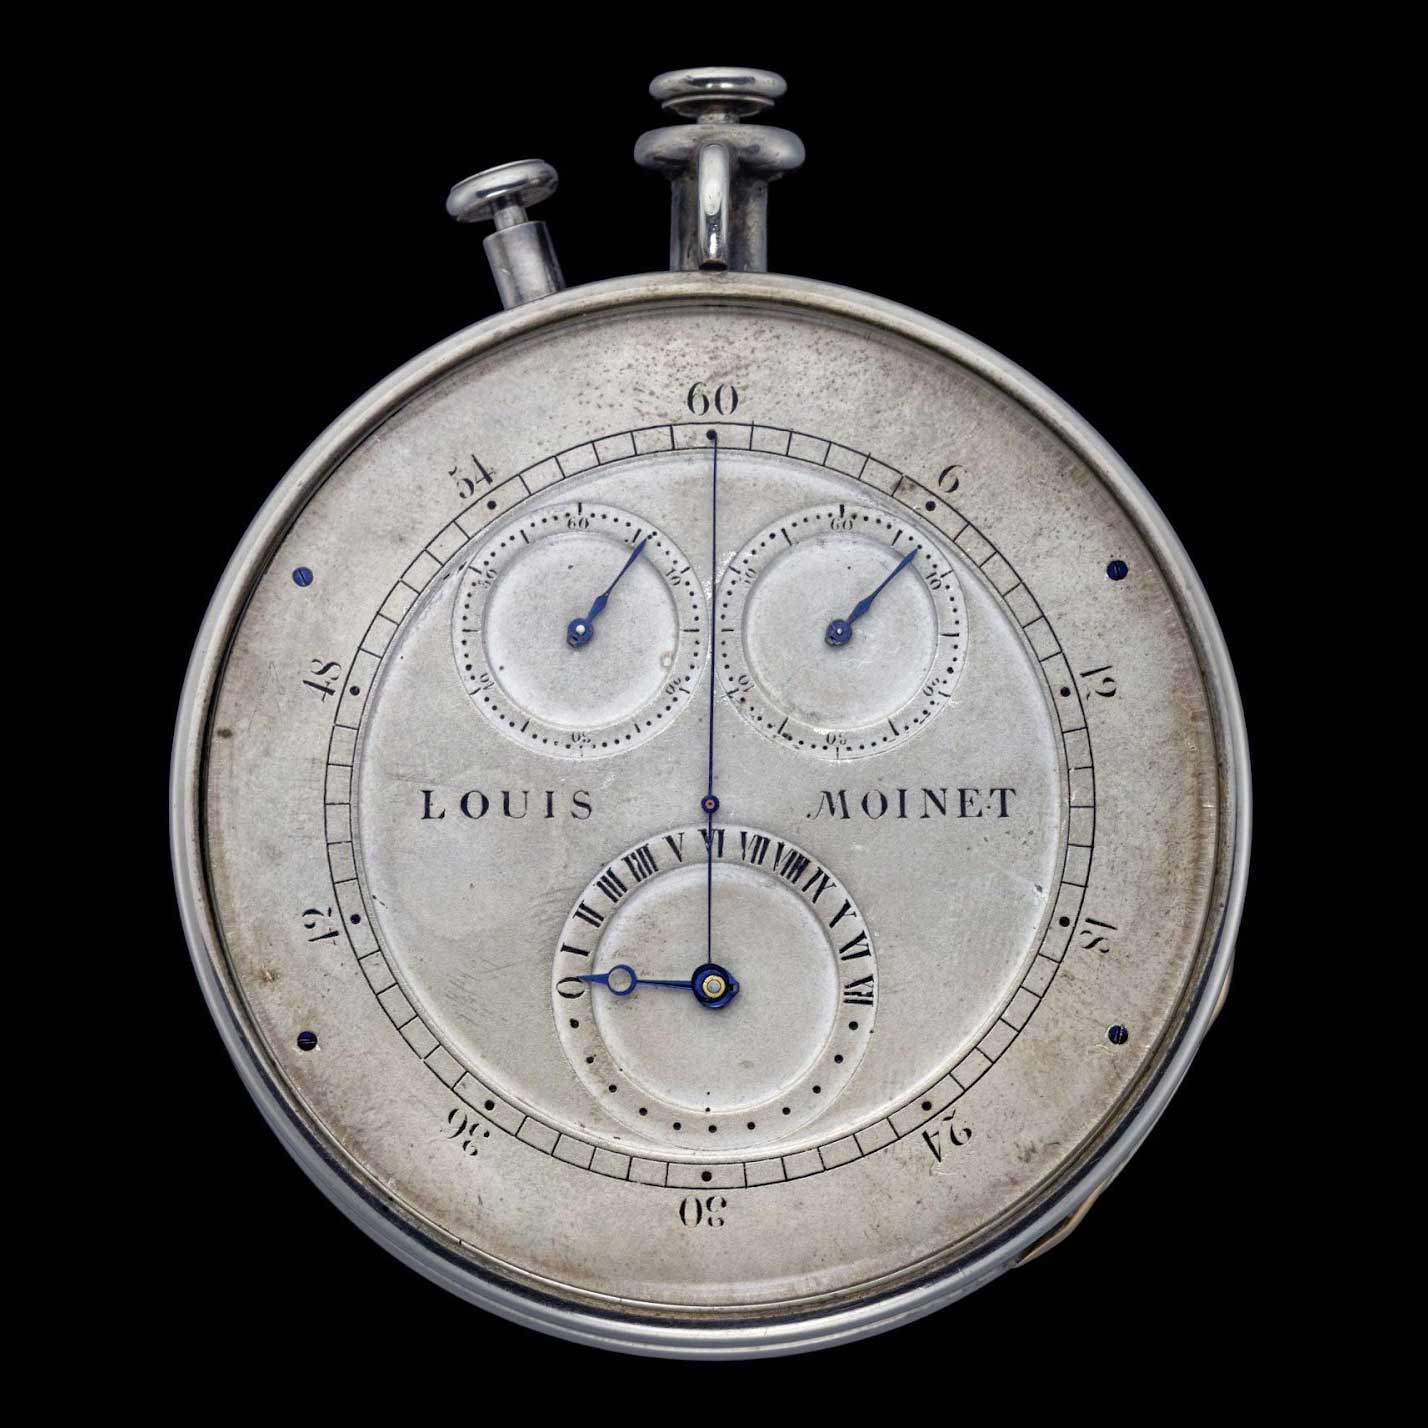 "The world's first chronograph, called a ""Compteur de Tierces,"" was invented by Louis Moinet in 1815 and completed in 1816, as attested by The Guinness World Records"